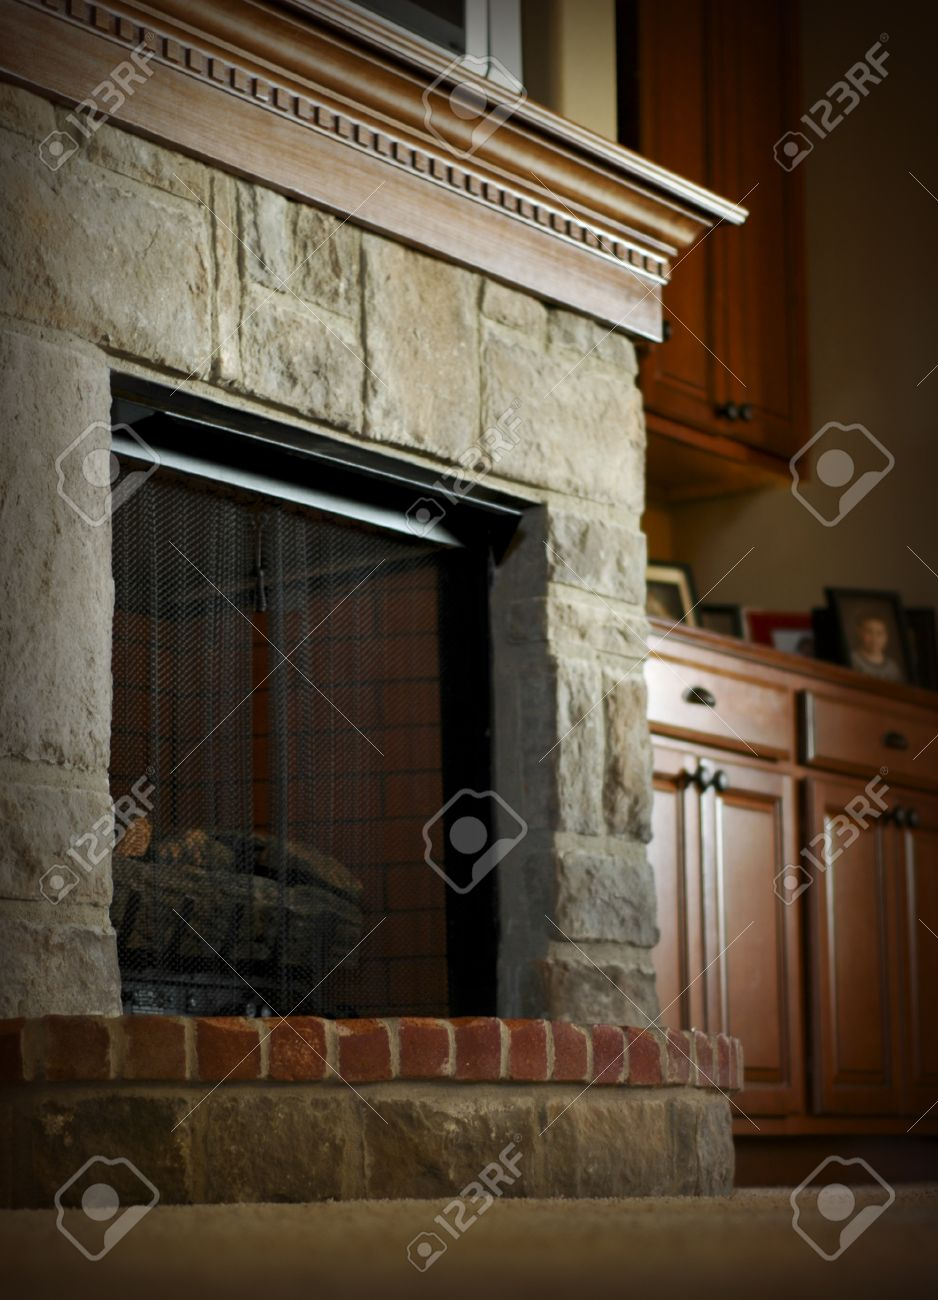 Brick Fireplace Wood Mantel Stone And Brick Fireplace With Wooden Mantel